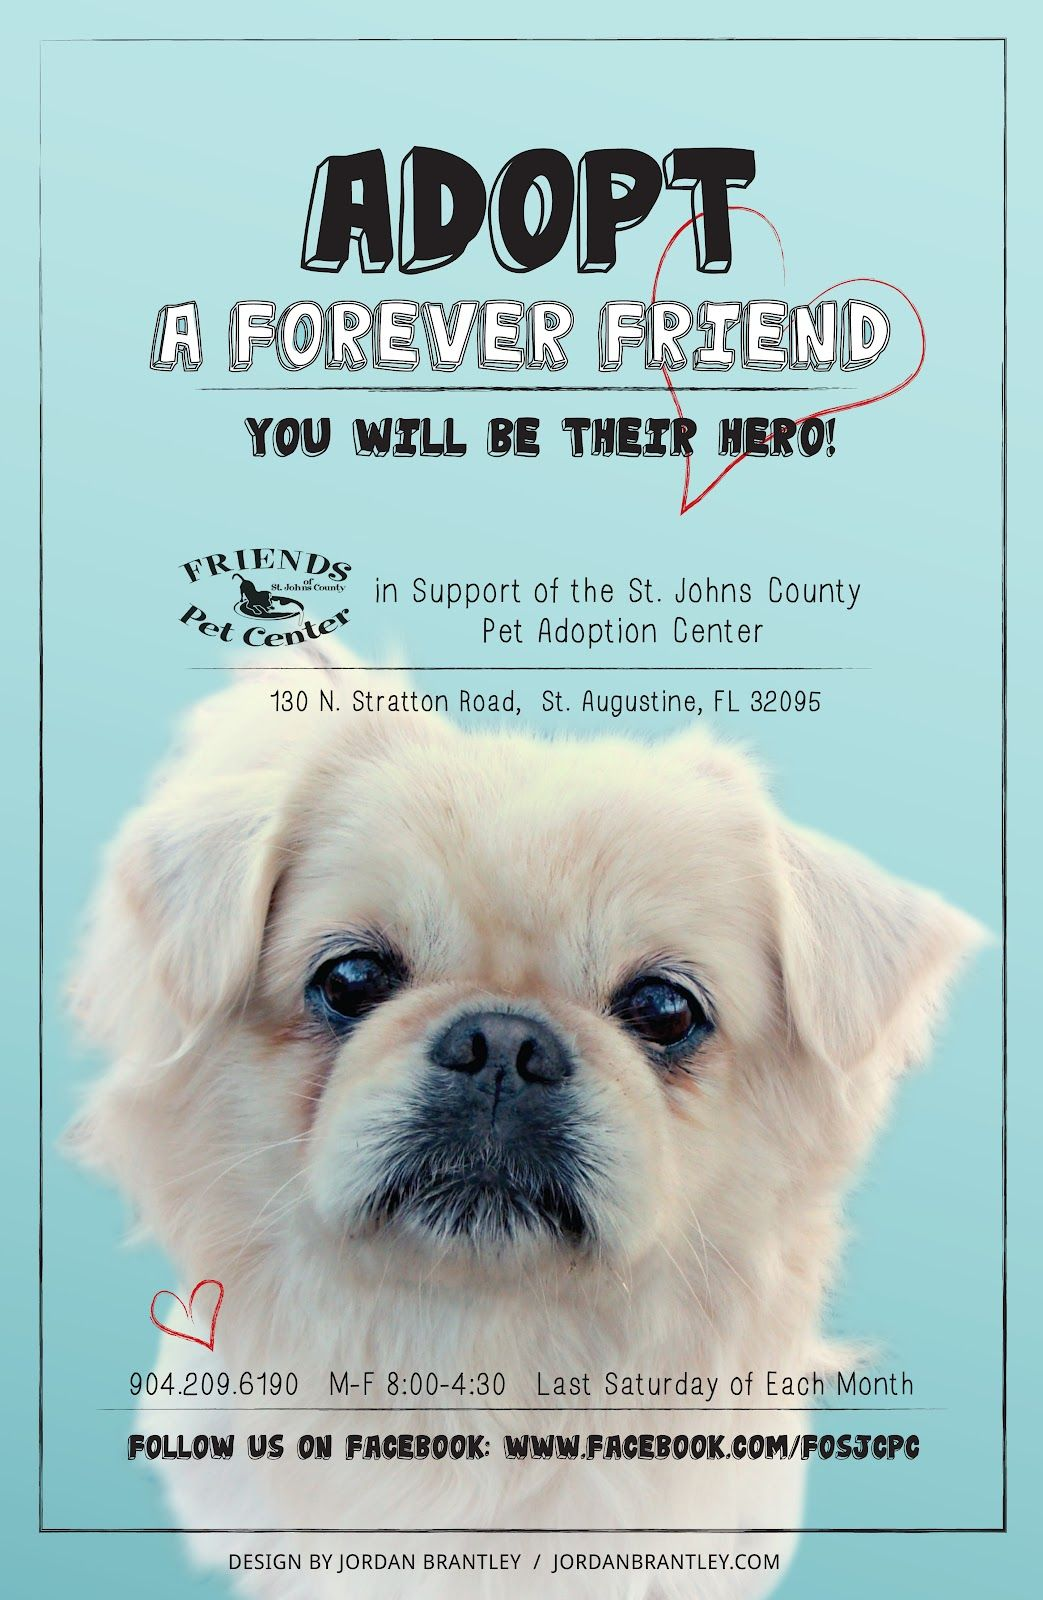 Adoption Poster Shelter Dogs Adoption Pet Adoption Pets